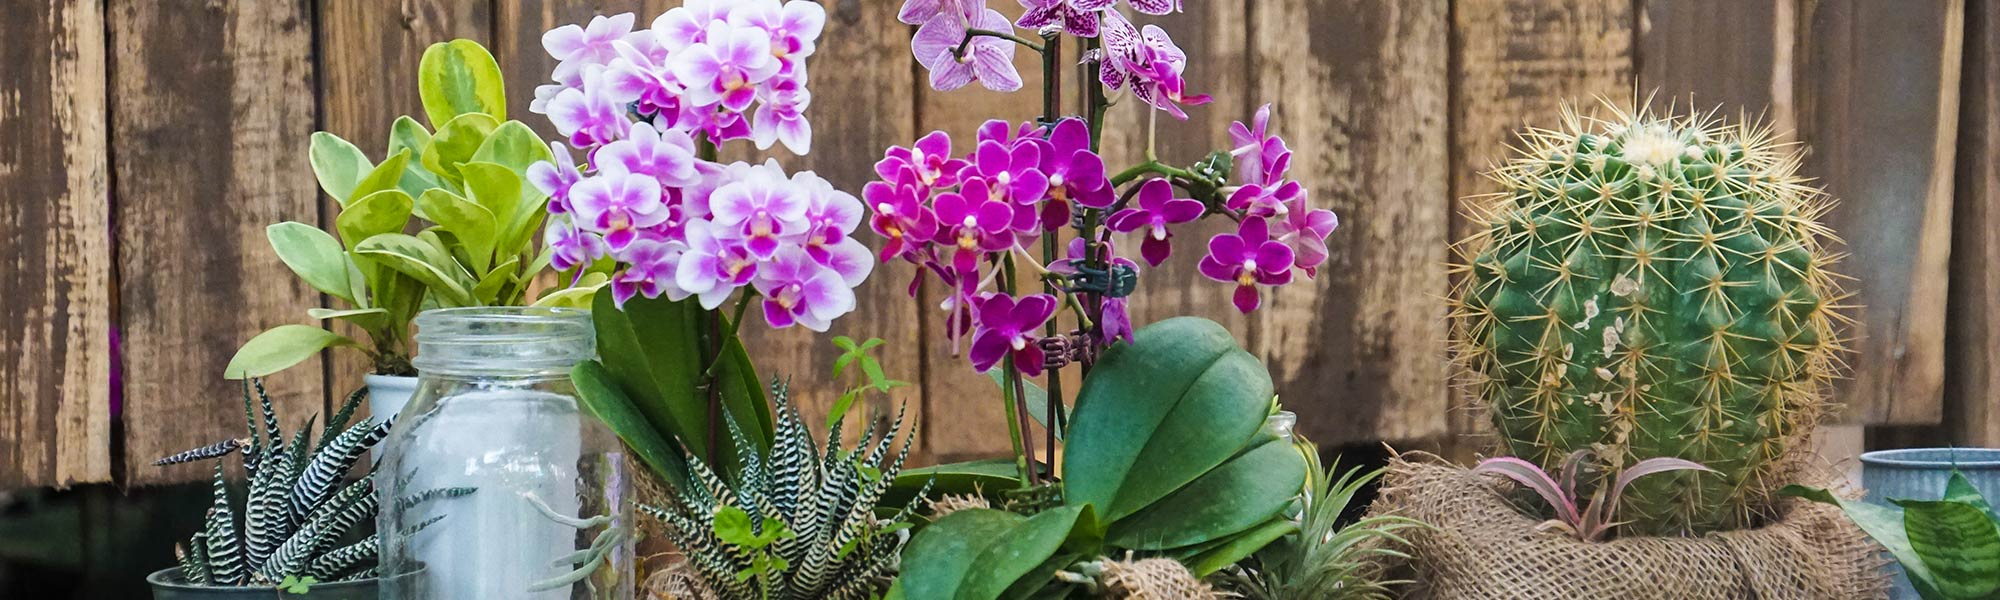 Orchid and Cactus